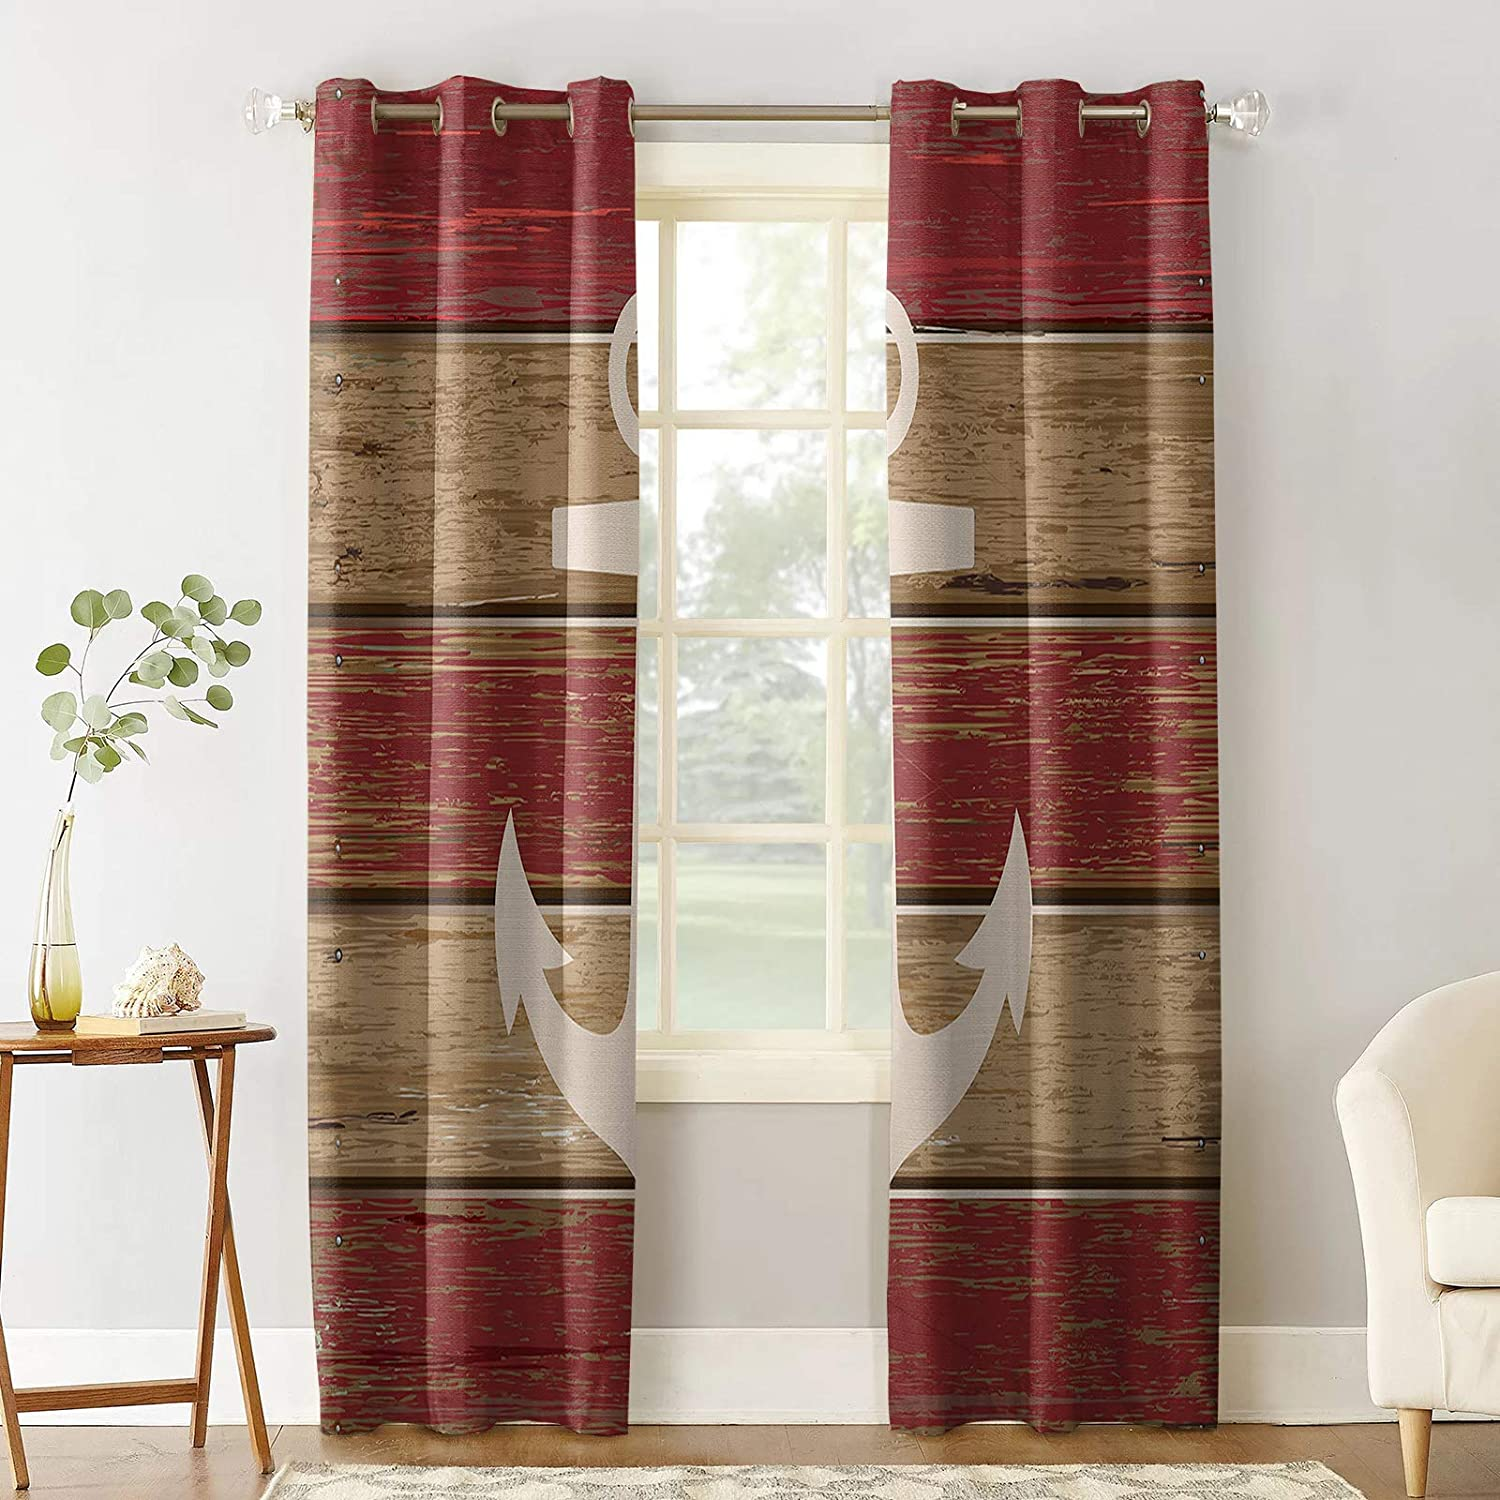 Popular products Sale Prime Leader Blackout Curtain for Wo Bedroom Vintage Anchor Old